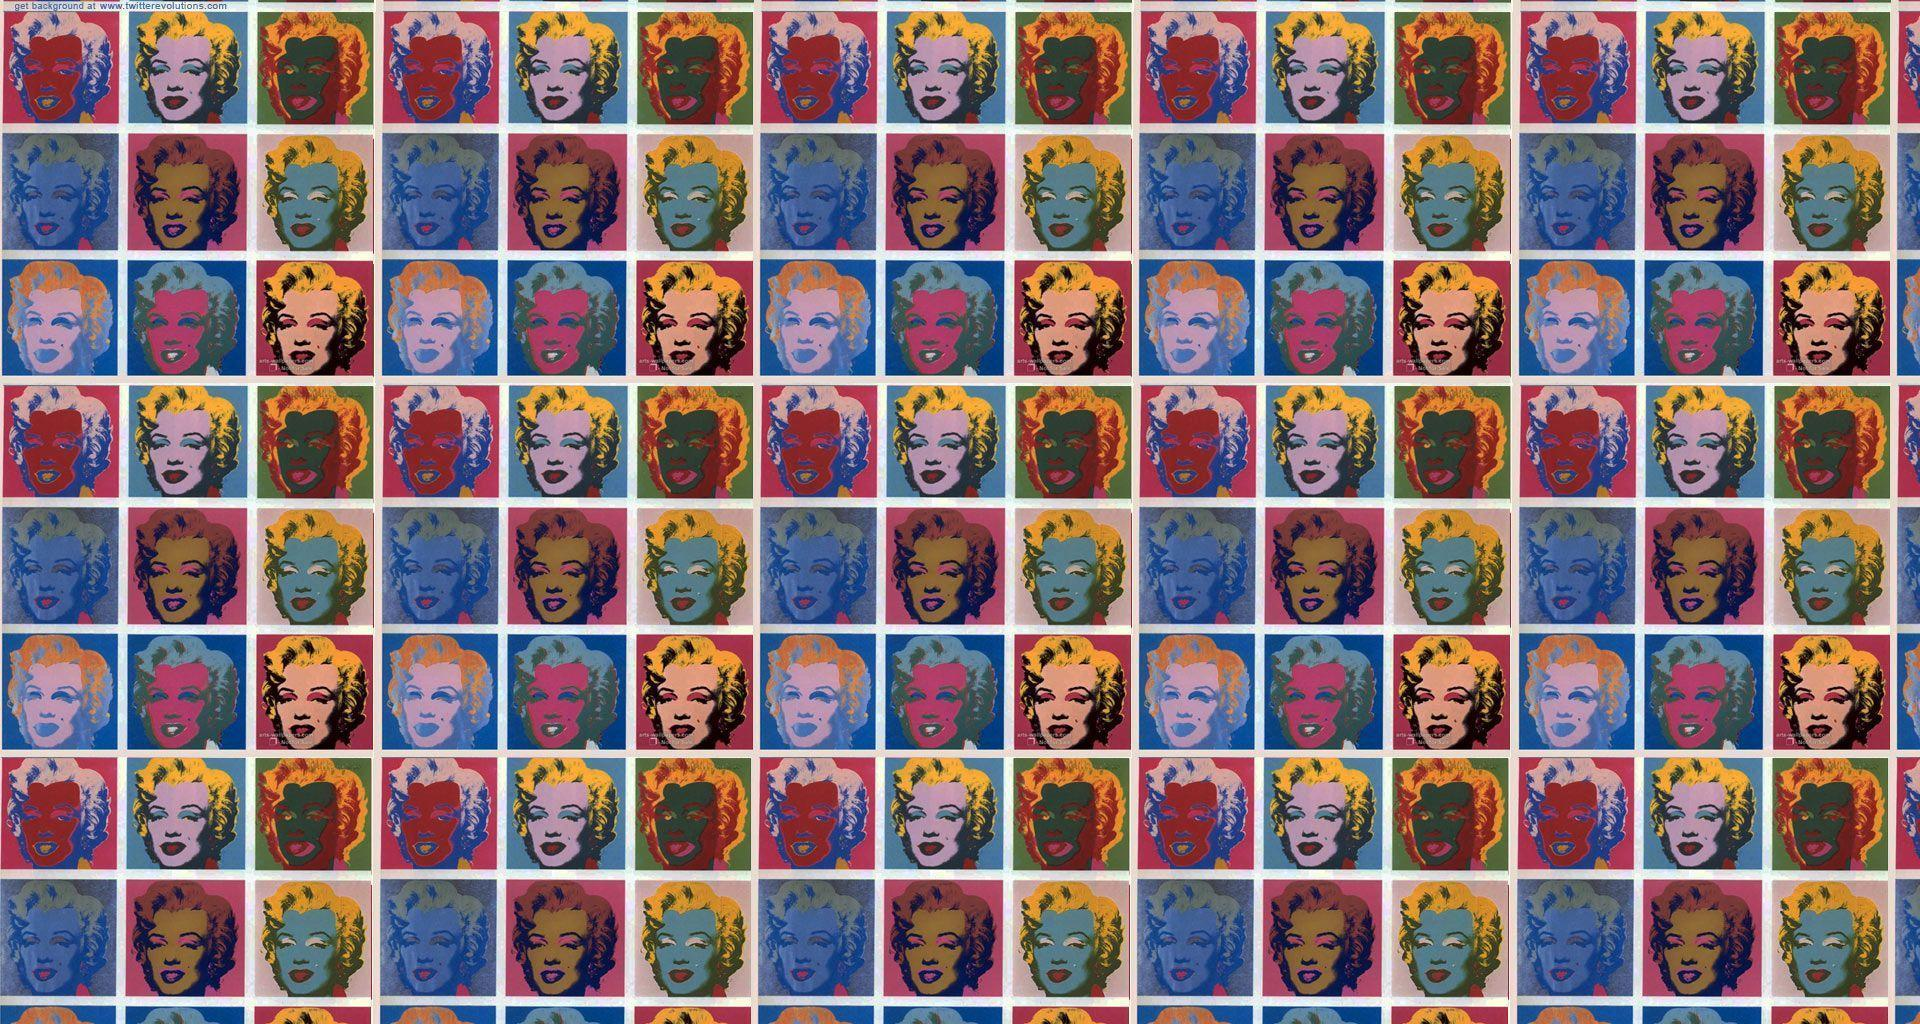 Andy Warhol Marilyn Monroe Wallpaper by HD Wallpapers Daily